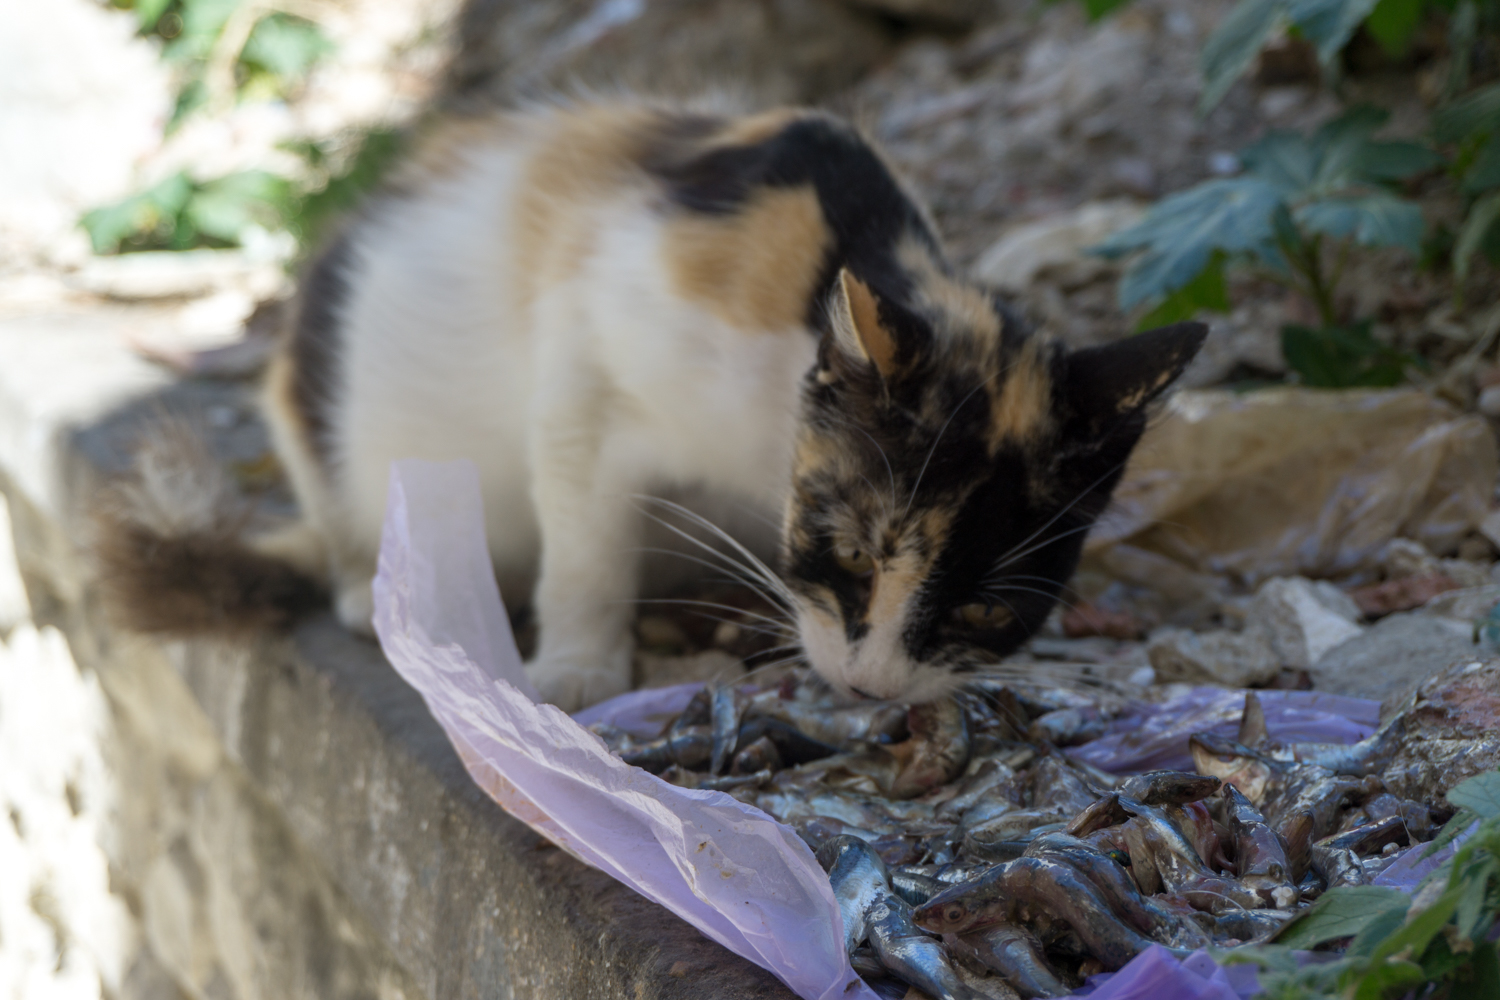 Many Moroccans leave leftover food out for the cats to eat.